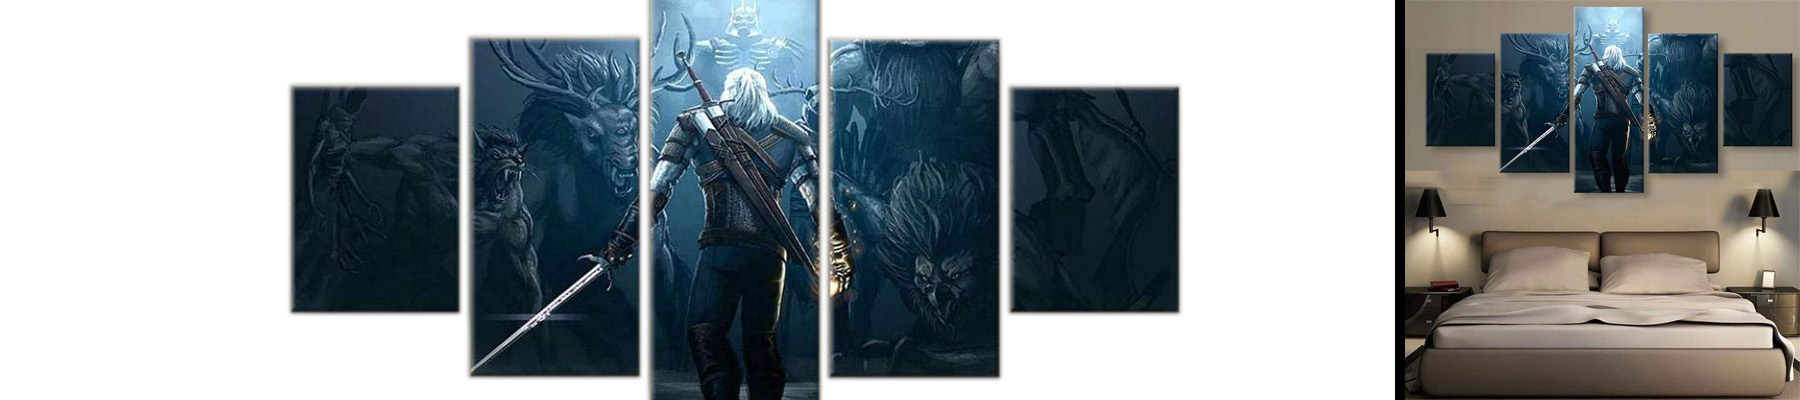 Witcher 3 Collage